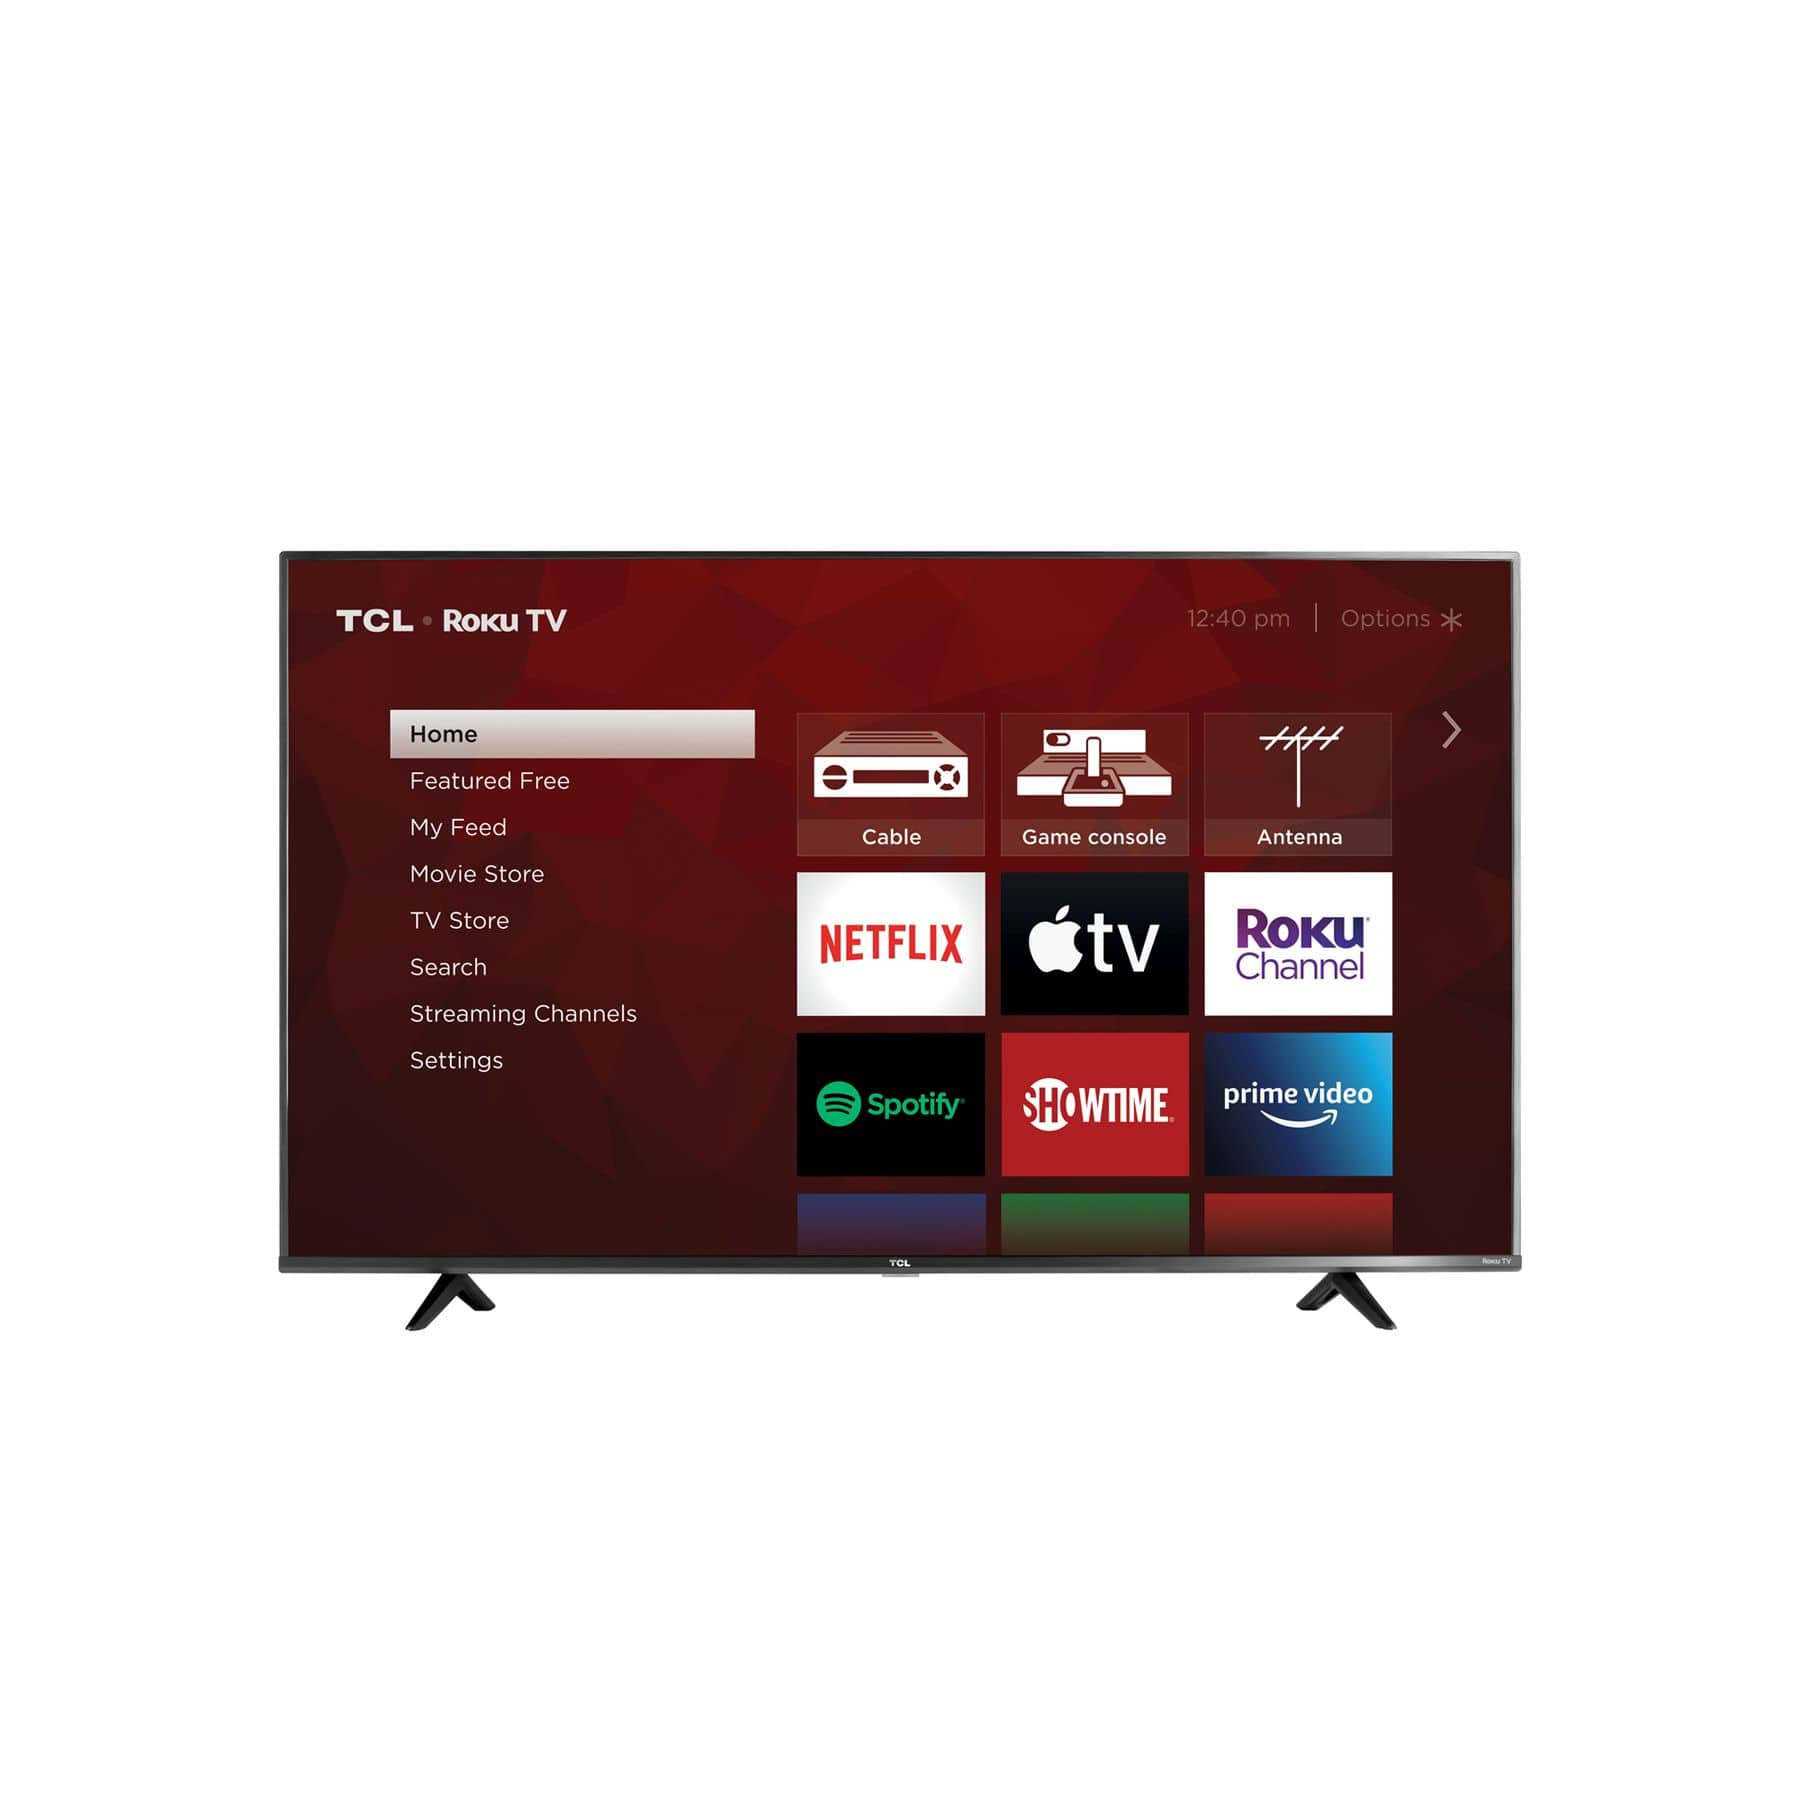 "TCL 43S433 4 Series 43"" LED UHD Roku Smart TV $169.99 - BJs WholeSale Club $169.99"